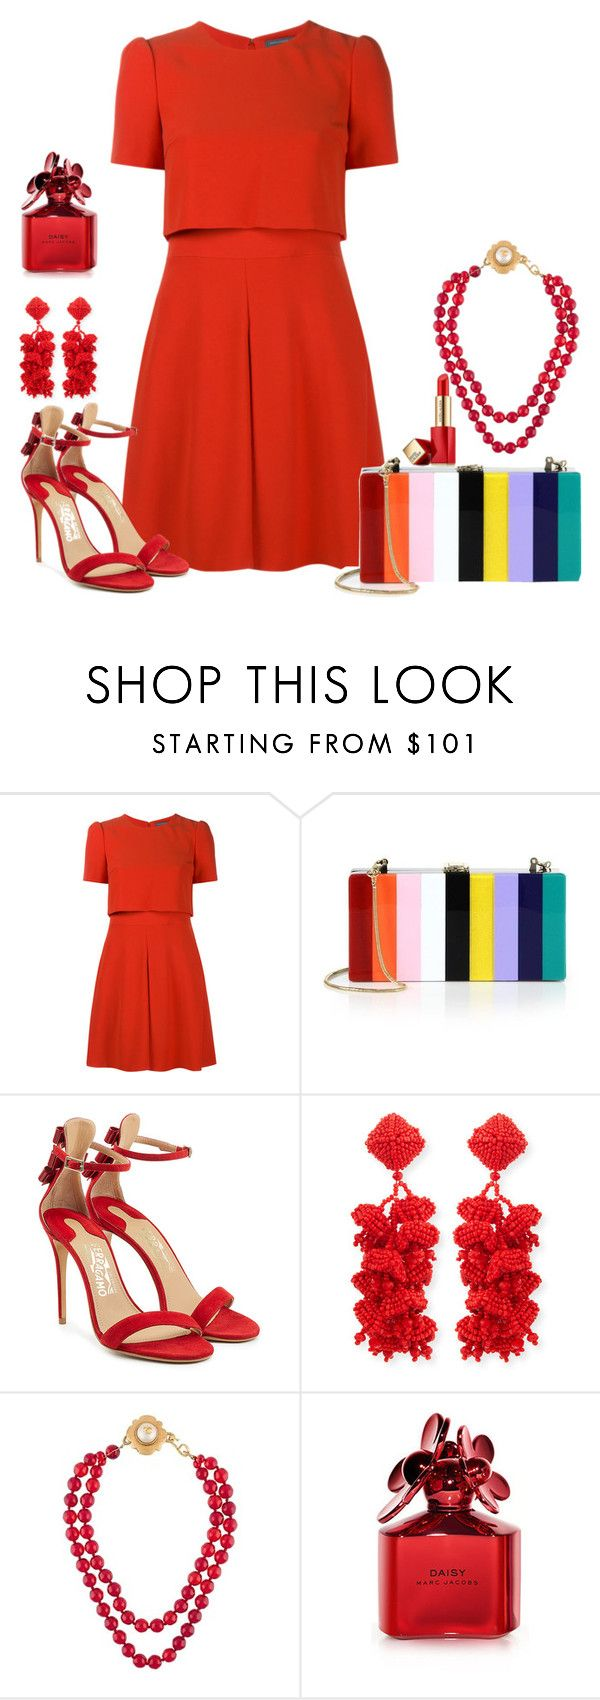 """Rainbow Bags #2"" by ann-kelley14 ❤ liked on Polyvore featuring Alexander McQueen, Milly, Salvatore Ferragamo, NOIR Sachin + Babi, Chanel, Marc Jacobs and Estée Lauder"